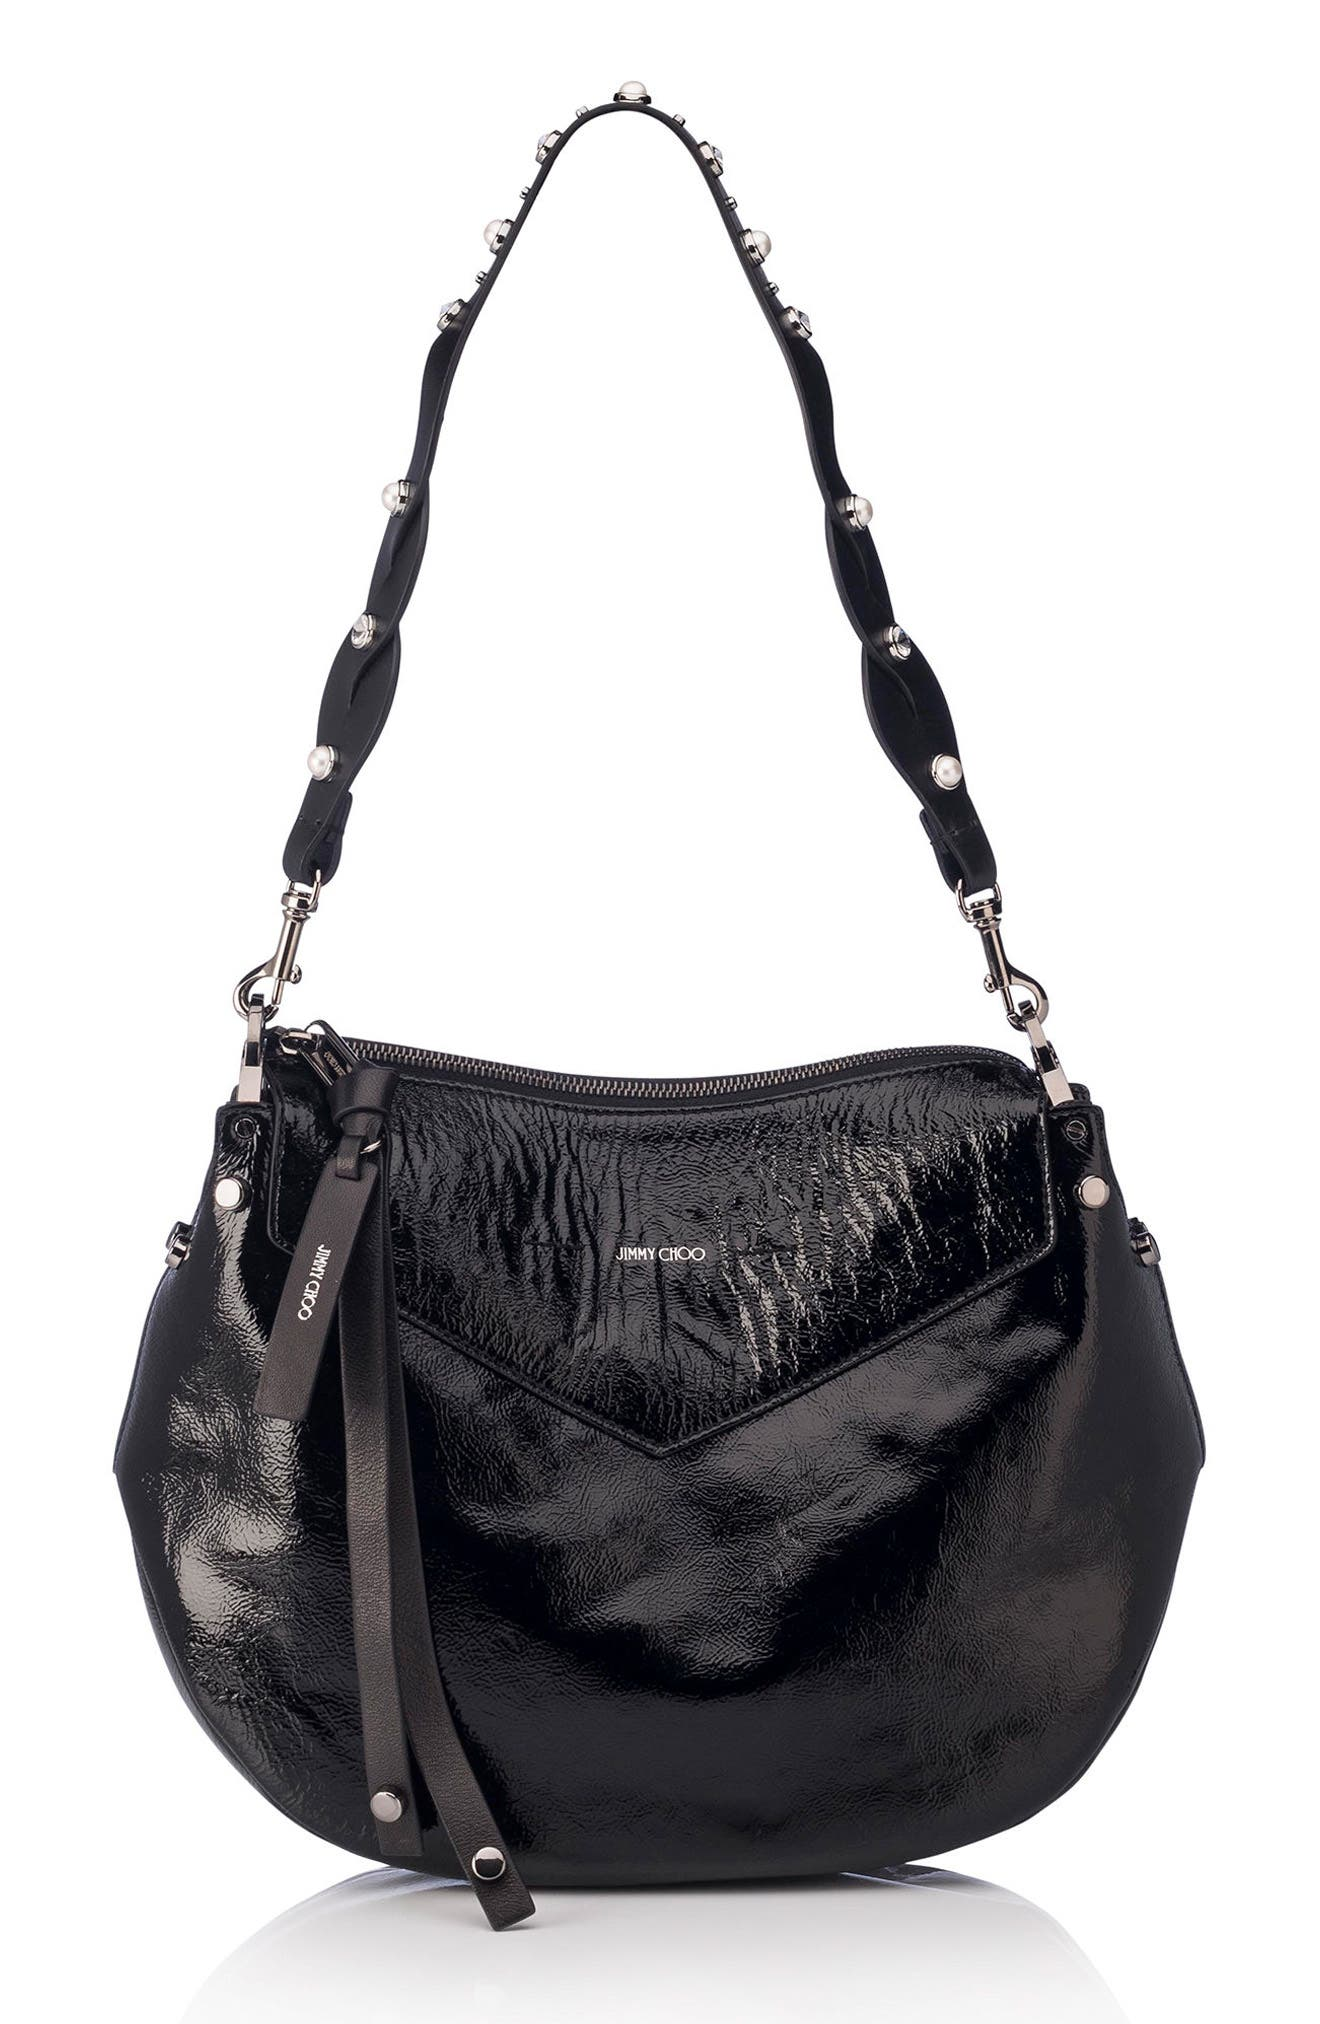 Alternate Image 1 Selected - Jimmy Choo Artie Textured Leather Hobo